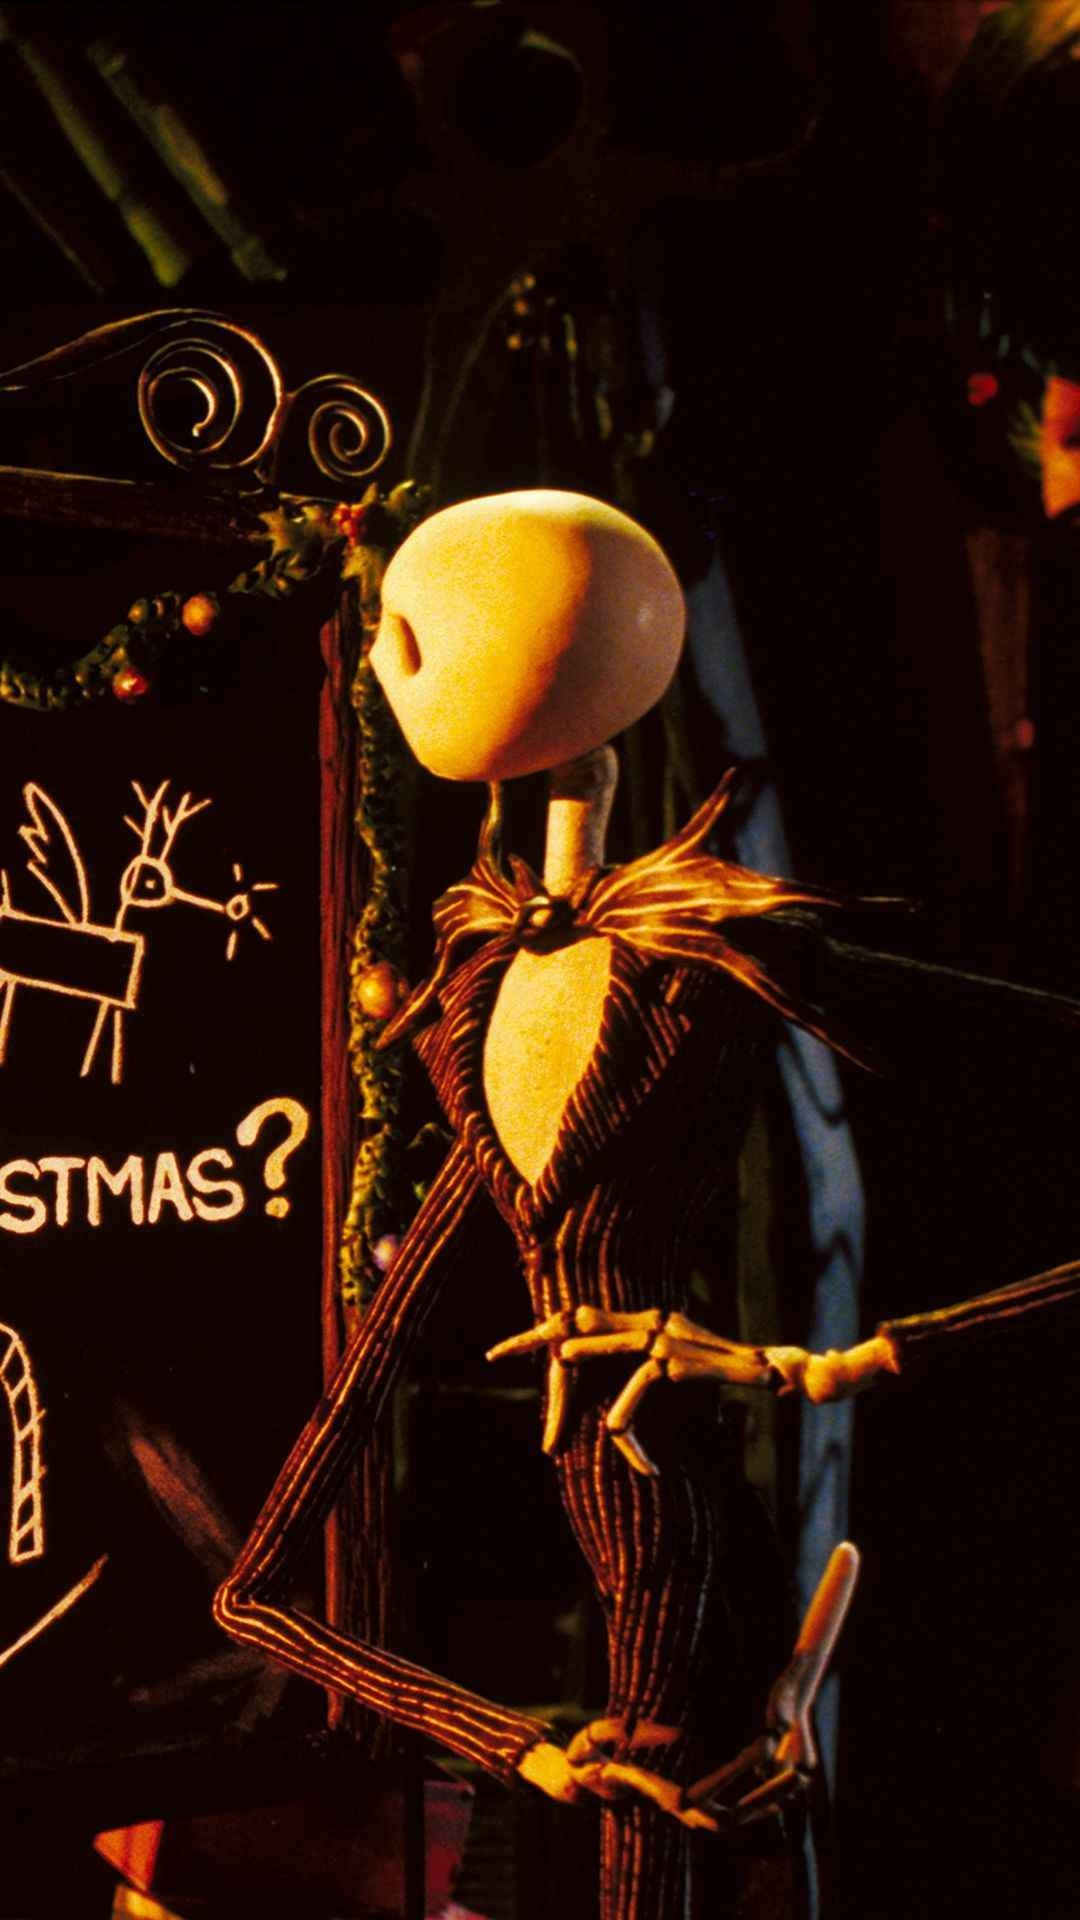 Fantastic Wallpaper Halloween Nightmare Before Christmas - 26532936e3379b245bd1a4701bdccfd6  Snapshot_213287.jpg